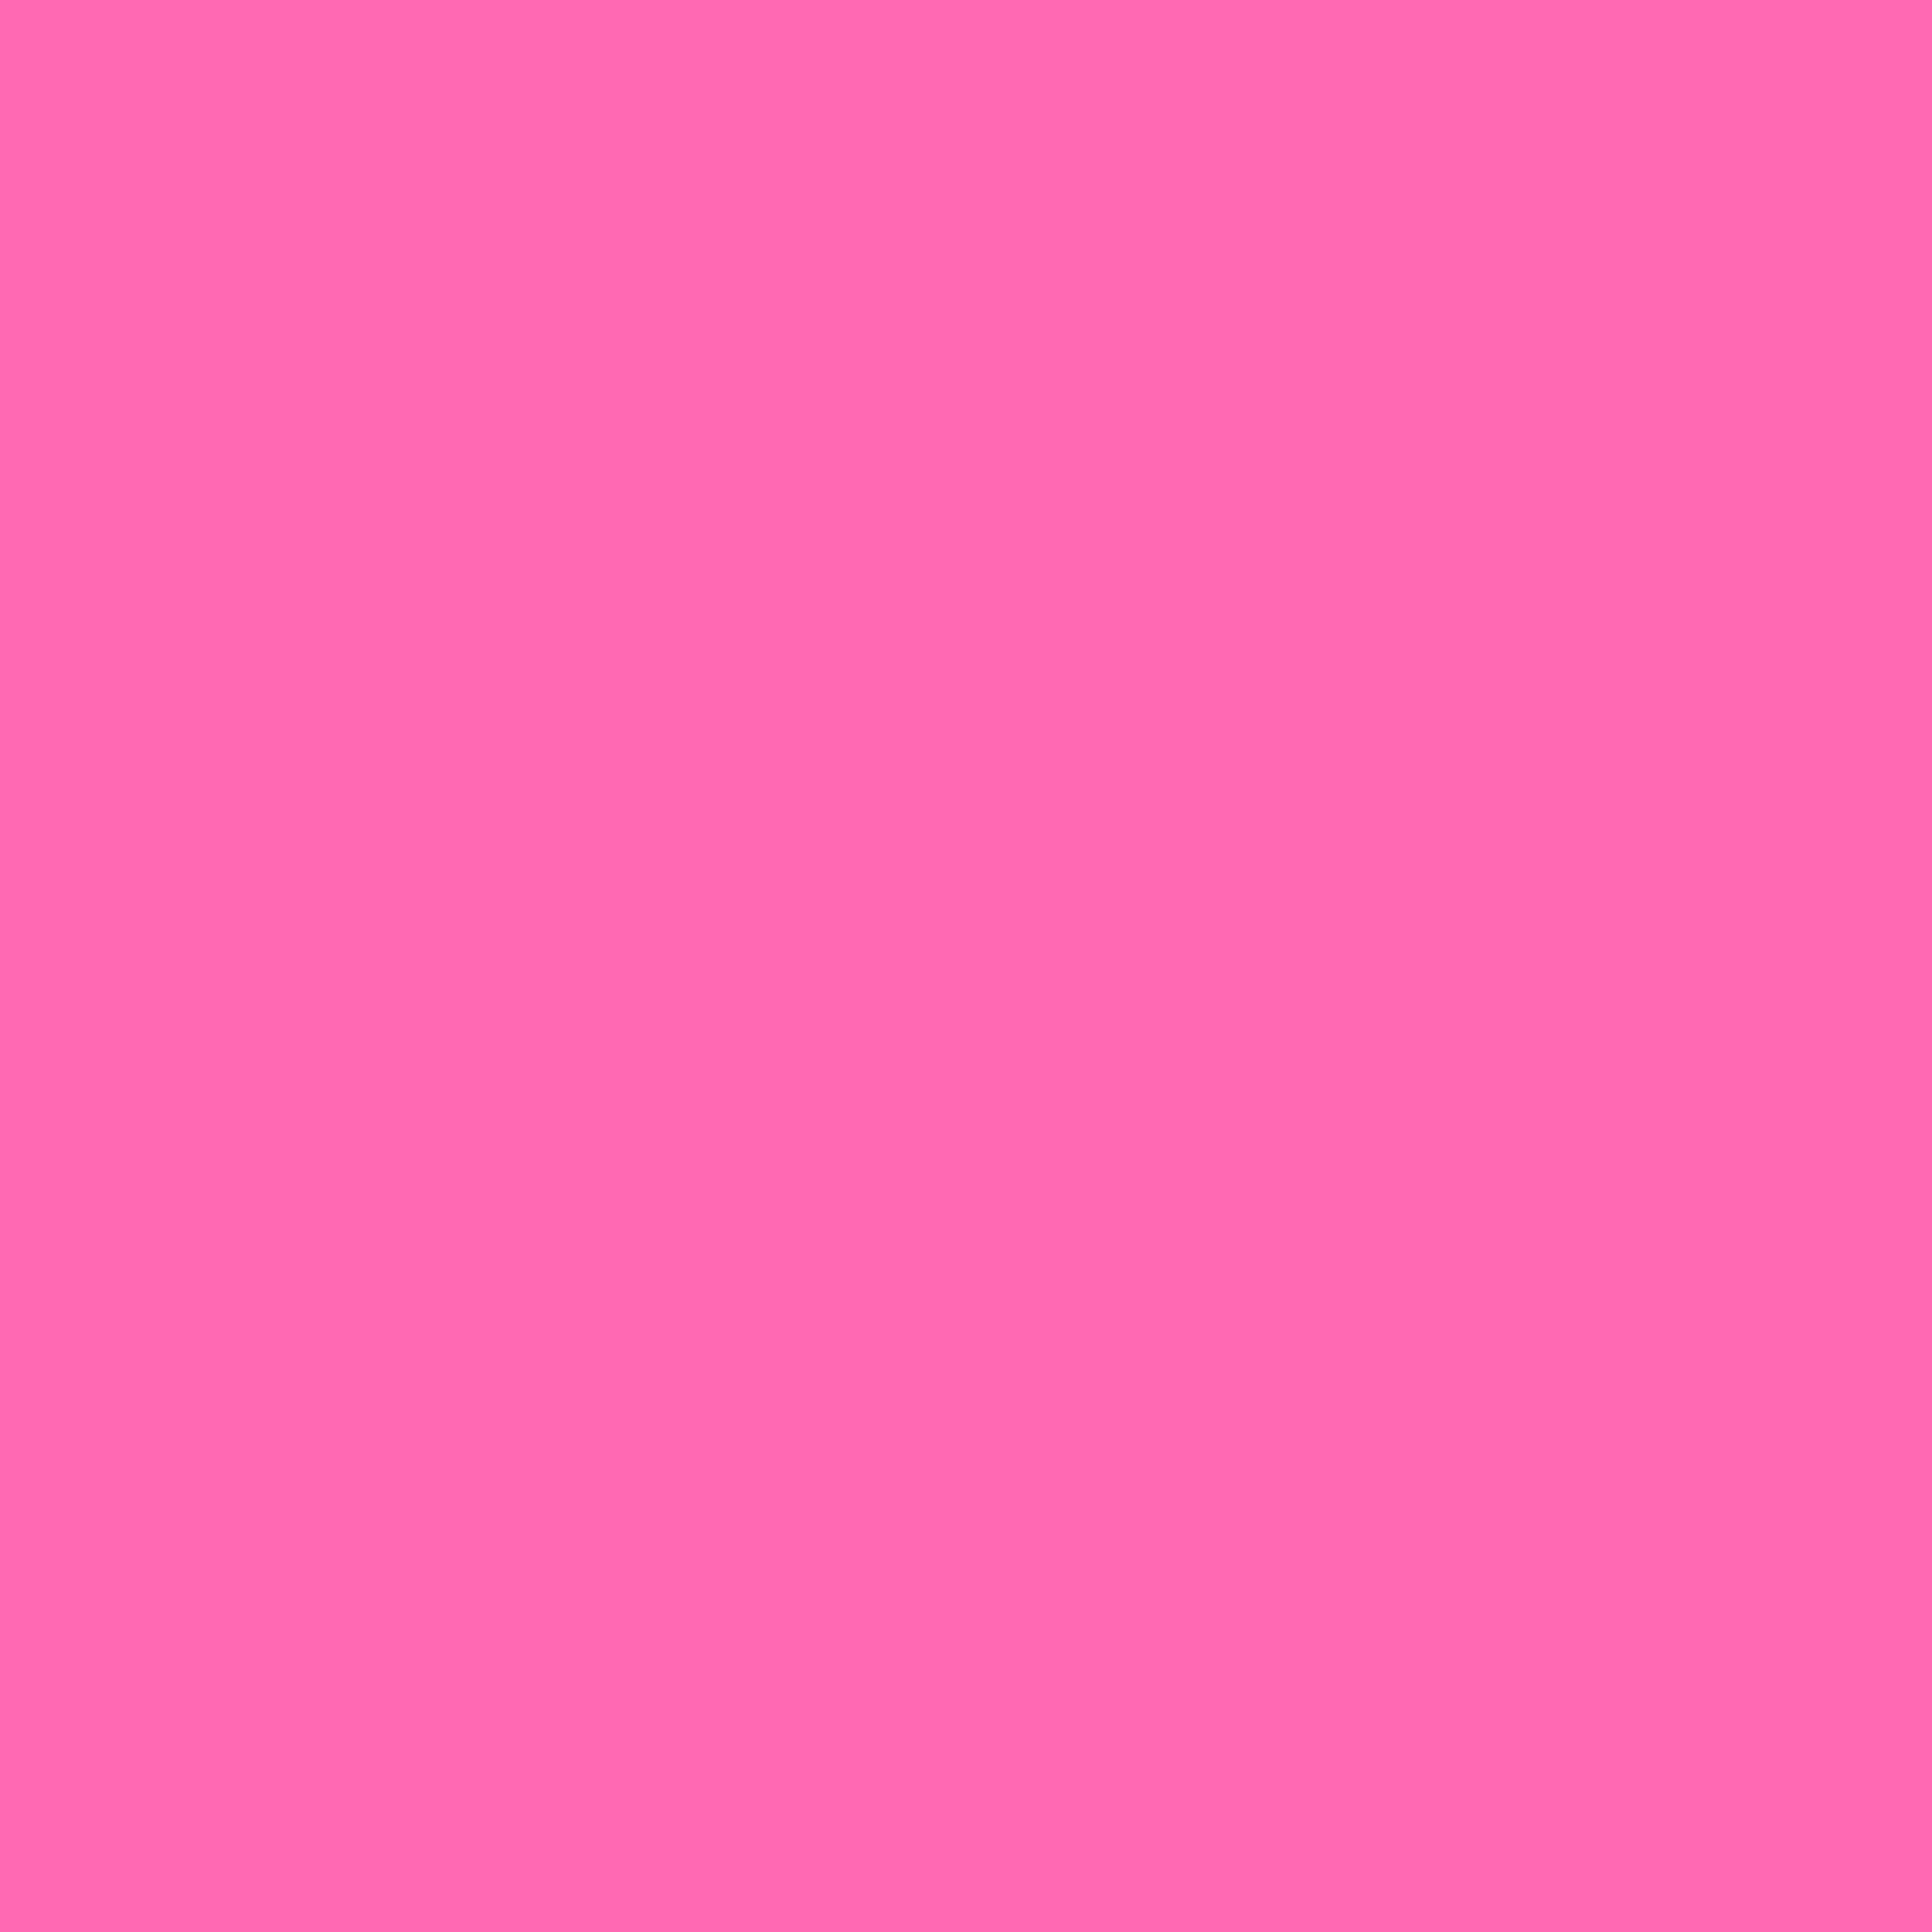 2732x2732 Hot Pink Solid Color Background